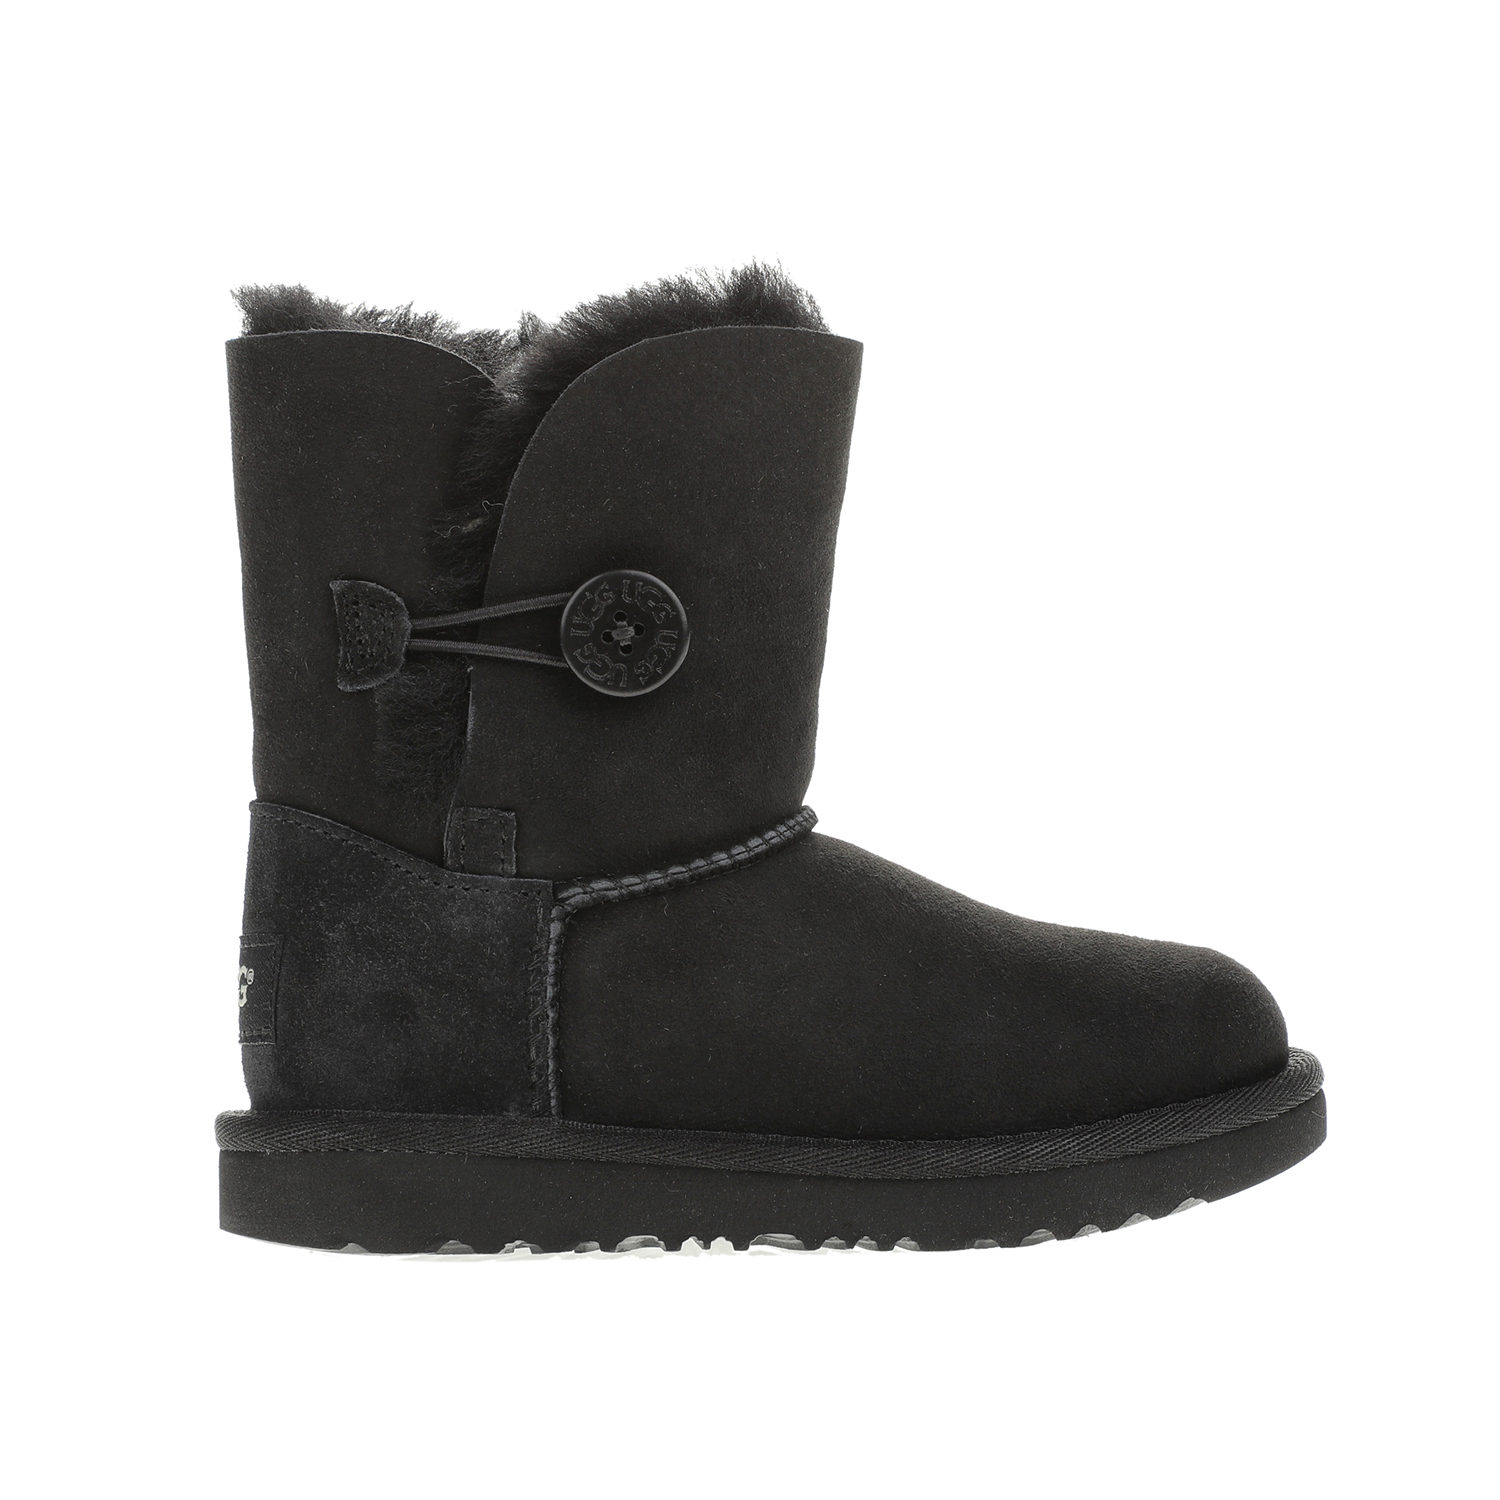 ae29ce15a86 -19% Factory Outlet UGG – Κοριτσίστικα μποτάκια UGG BAILEY BUTTON II STARS  μαύρα